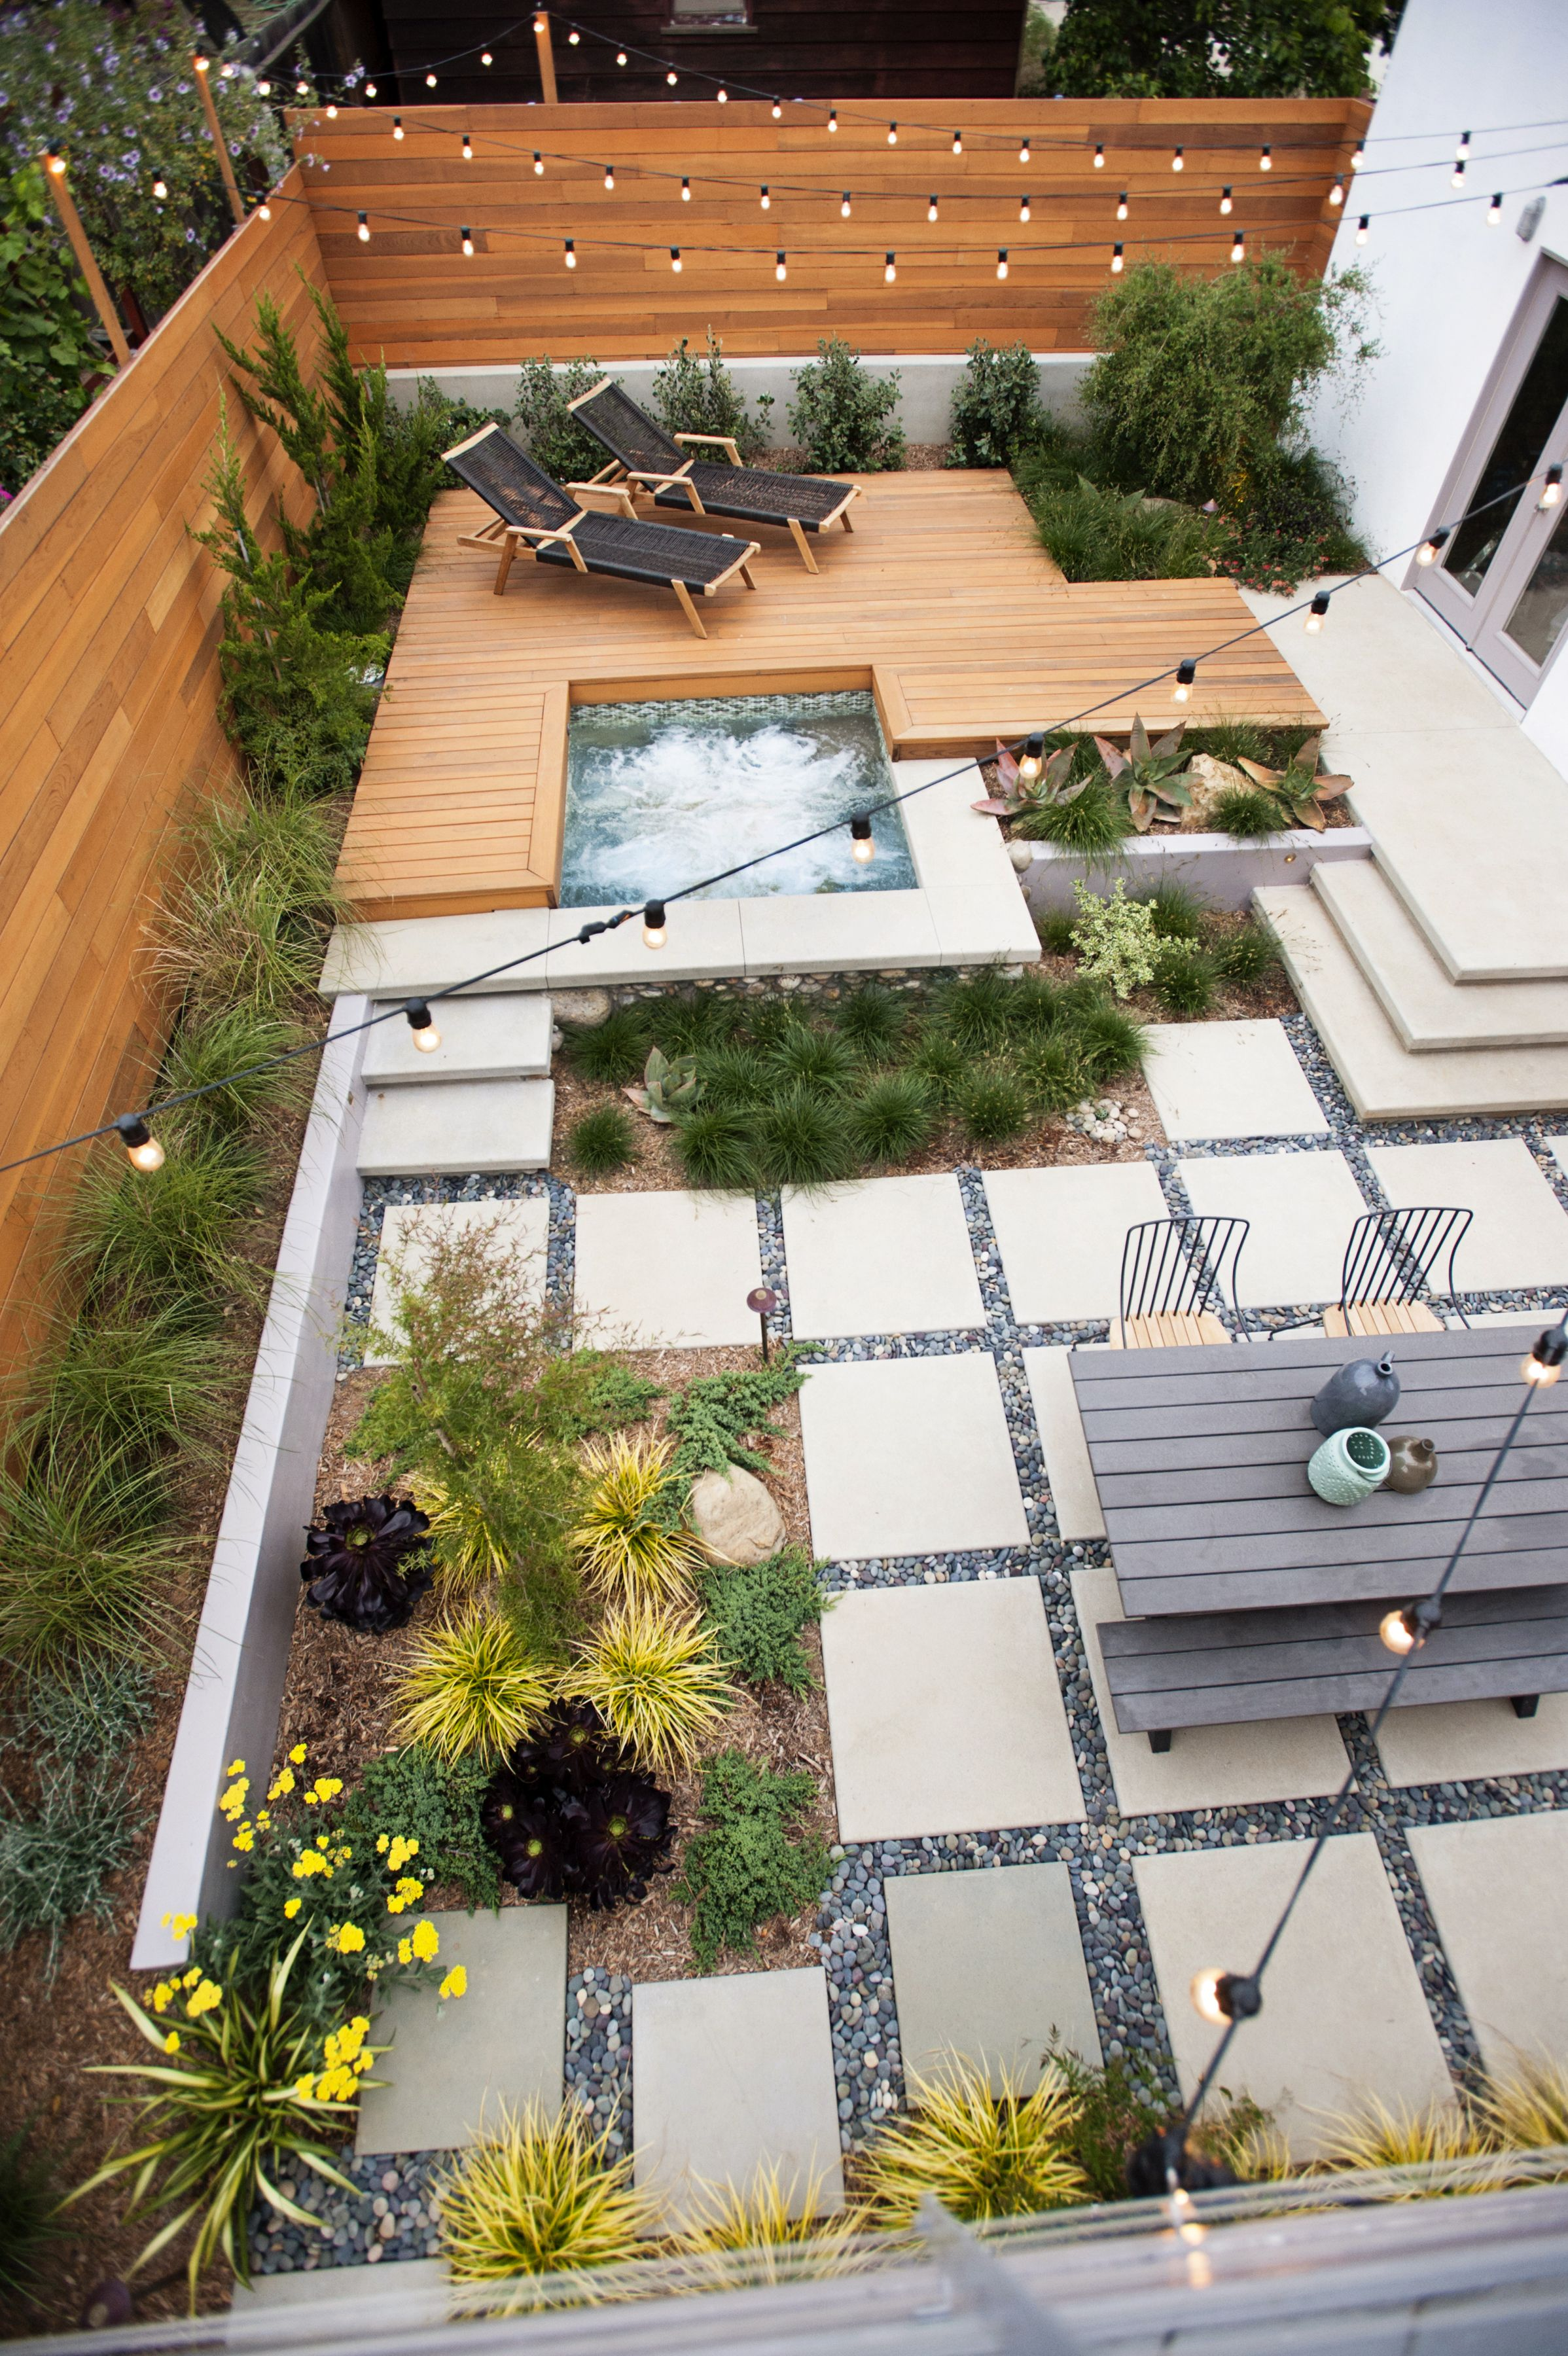 8 summer small patio ideas for you | designed to the nines